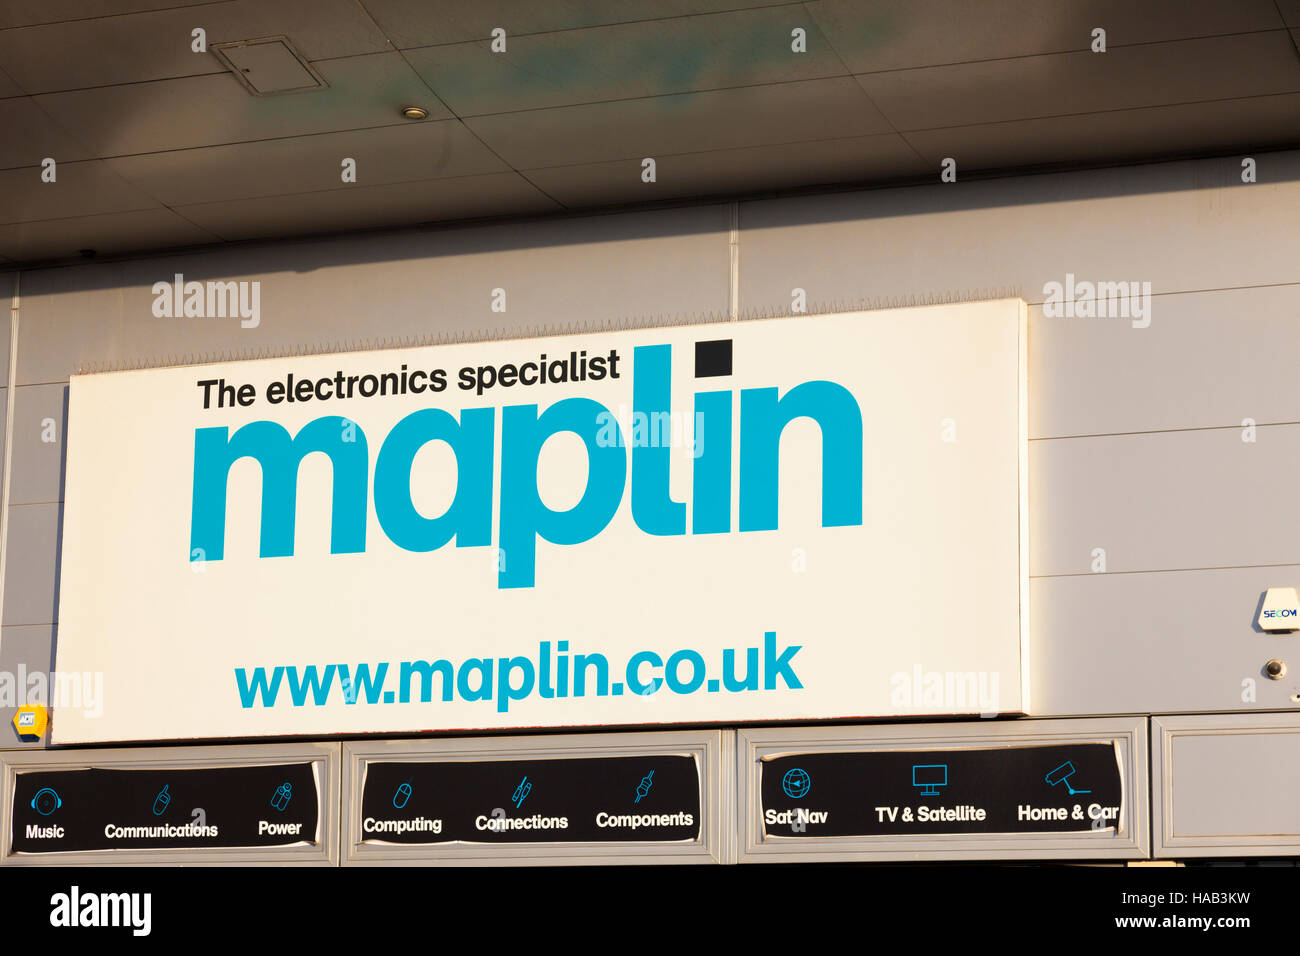 Shop sign, Maplin, the electrical specialist, London, UK - Stock Image